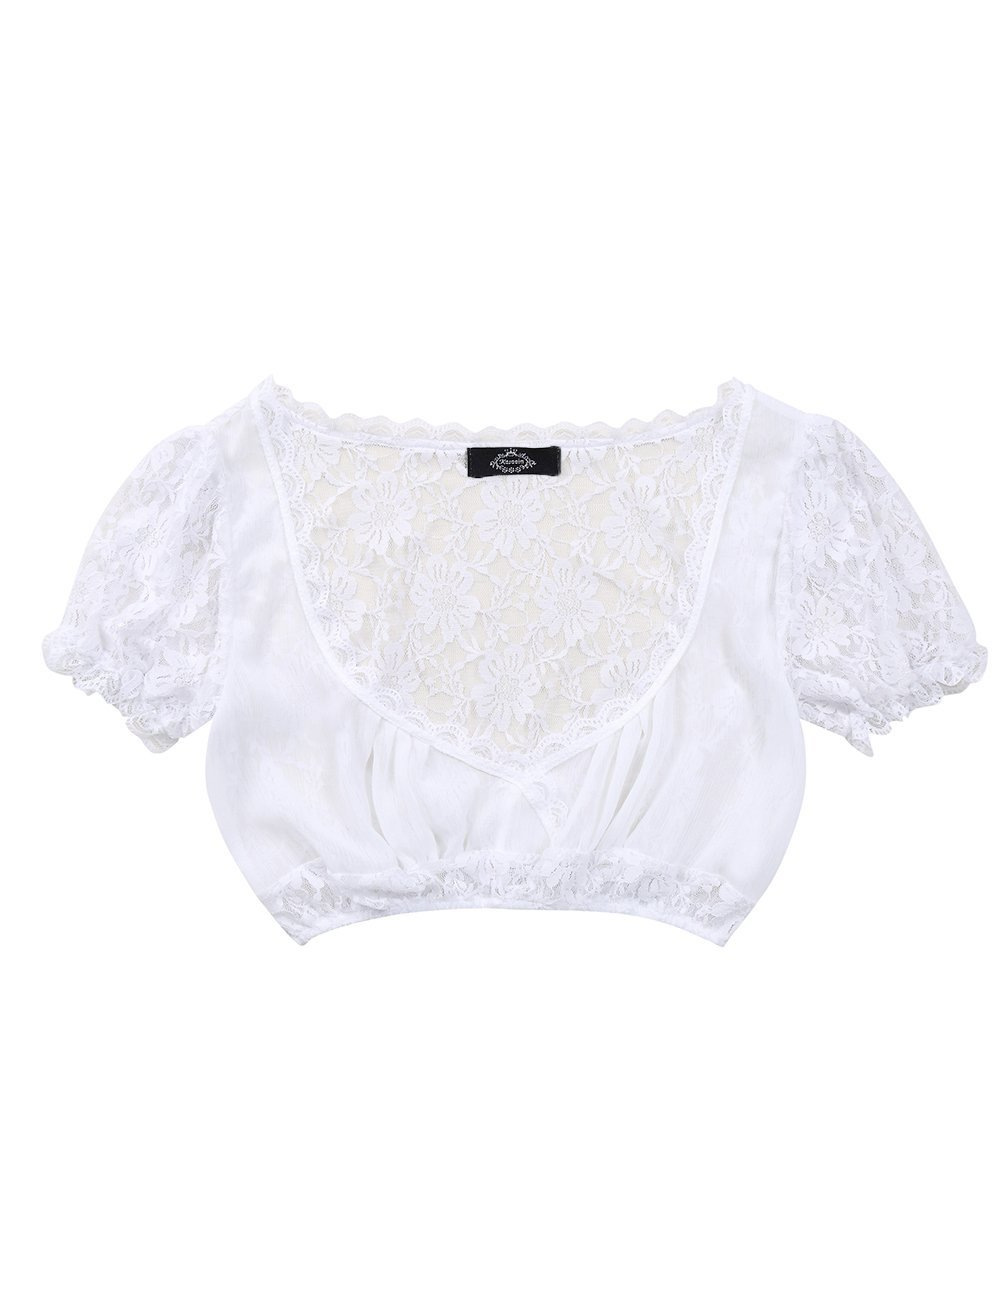 Leoie Women's Beer Festival Sexy See-Through Dirndl Solid Lace Chiffon Splicing Stylish Dirndl Top by Leoie (Image #5)